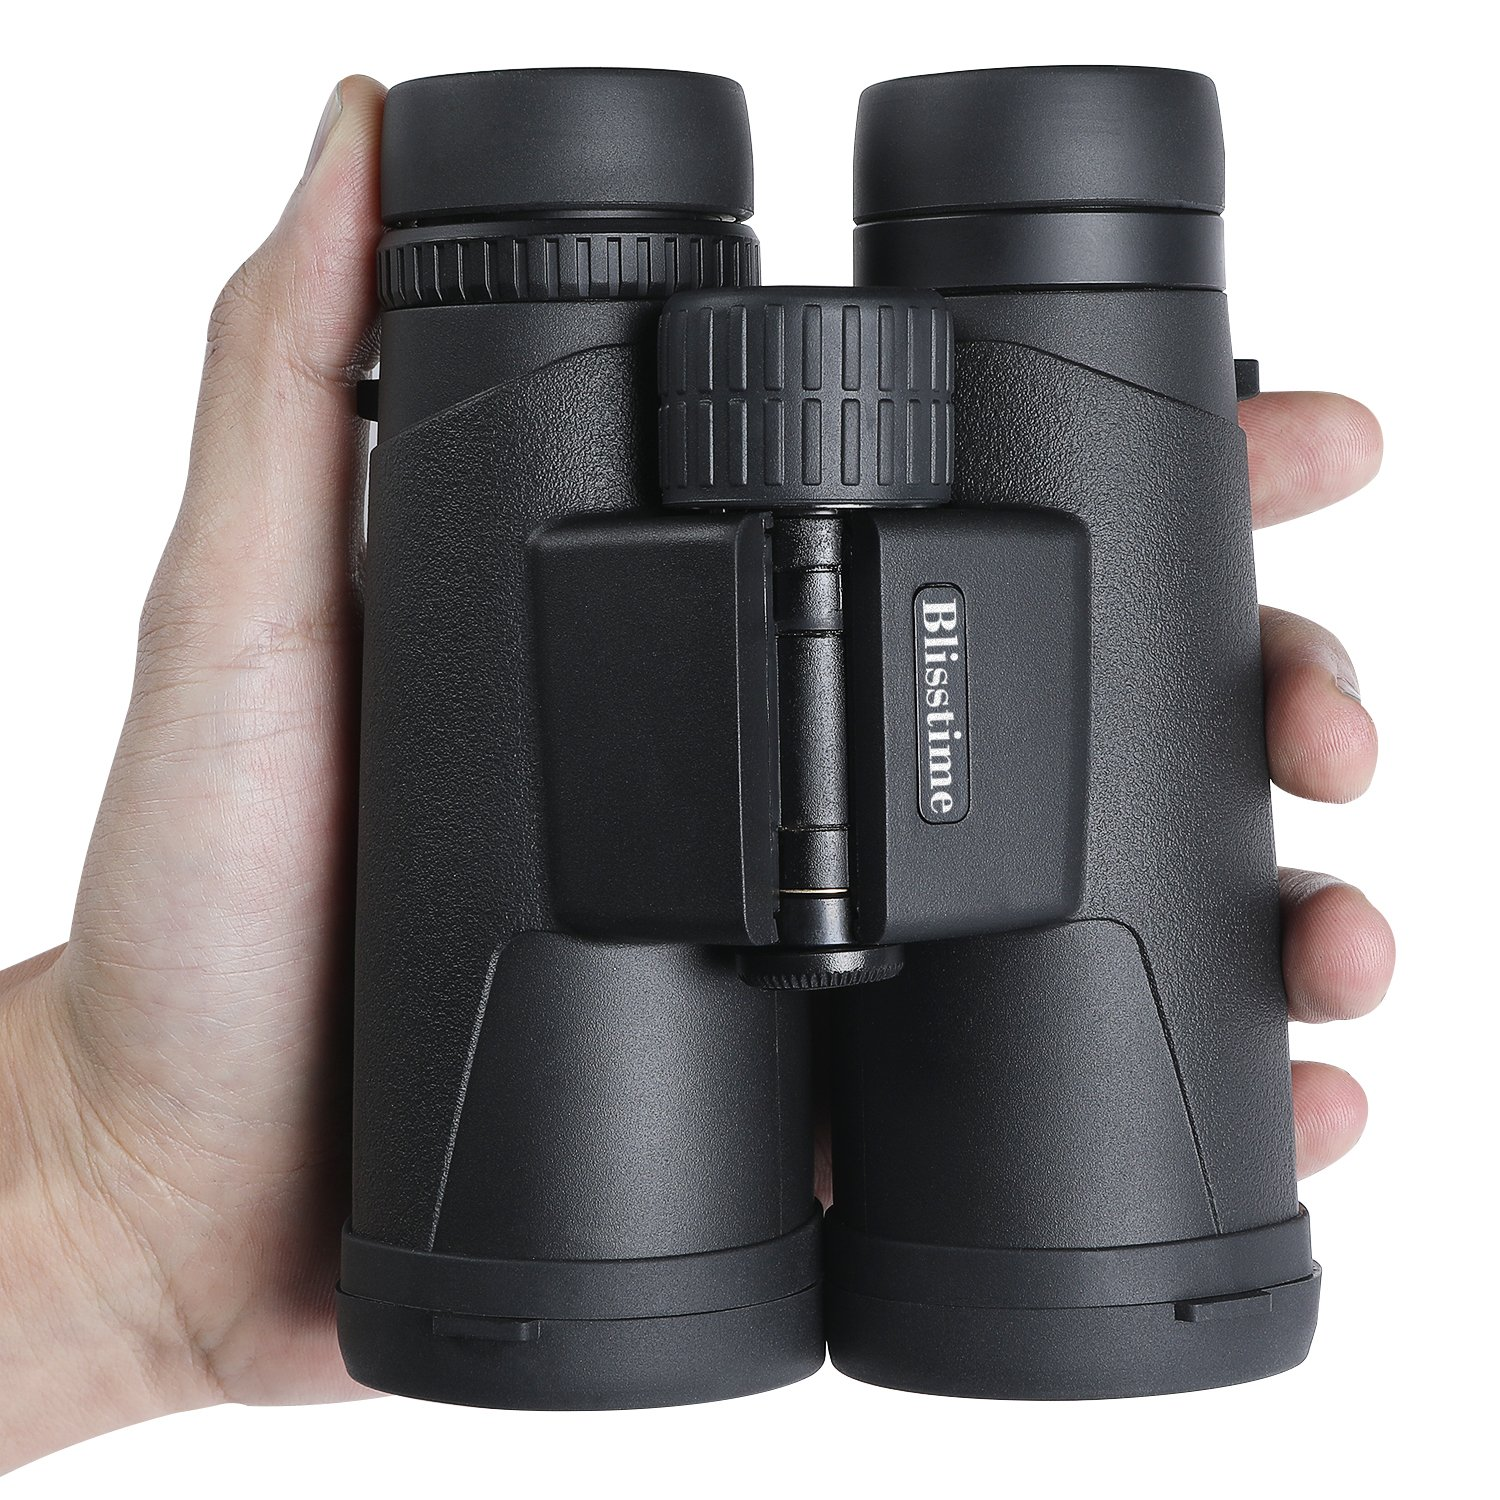 10×42 Binoculars for Adults, Compact Binoculars High Powered Binoculars with Fully Multi-Coated Lens, Waterproof Fogproof Low Light Night Vision for Bird Watching, Outdoor, Hunting, Camping, Hiking